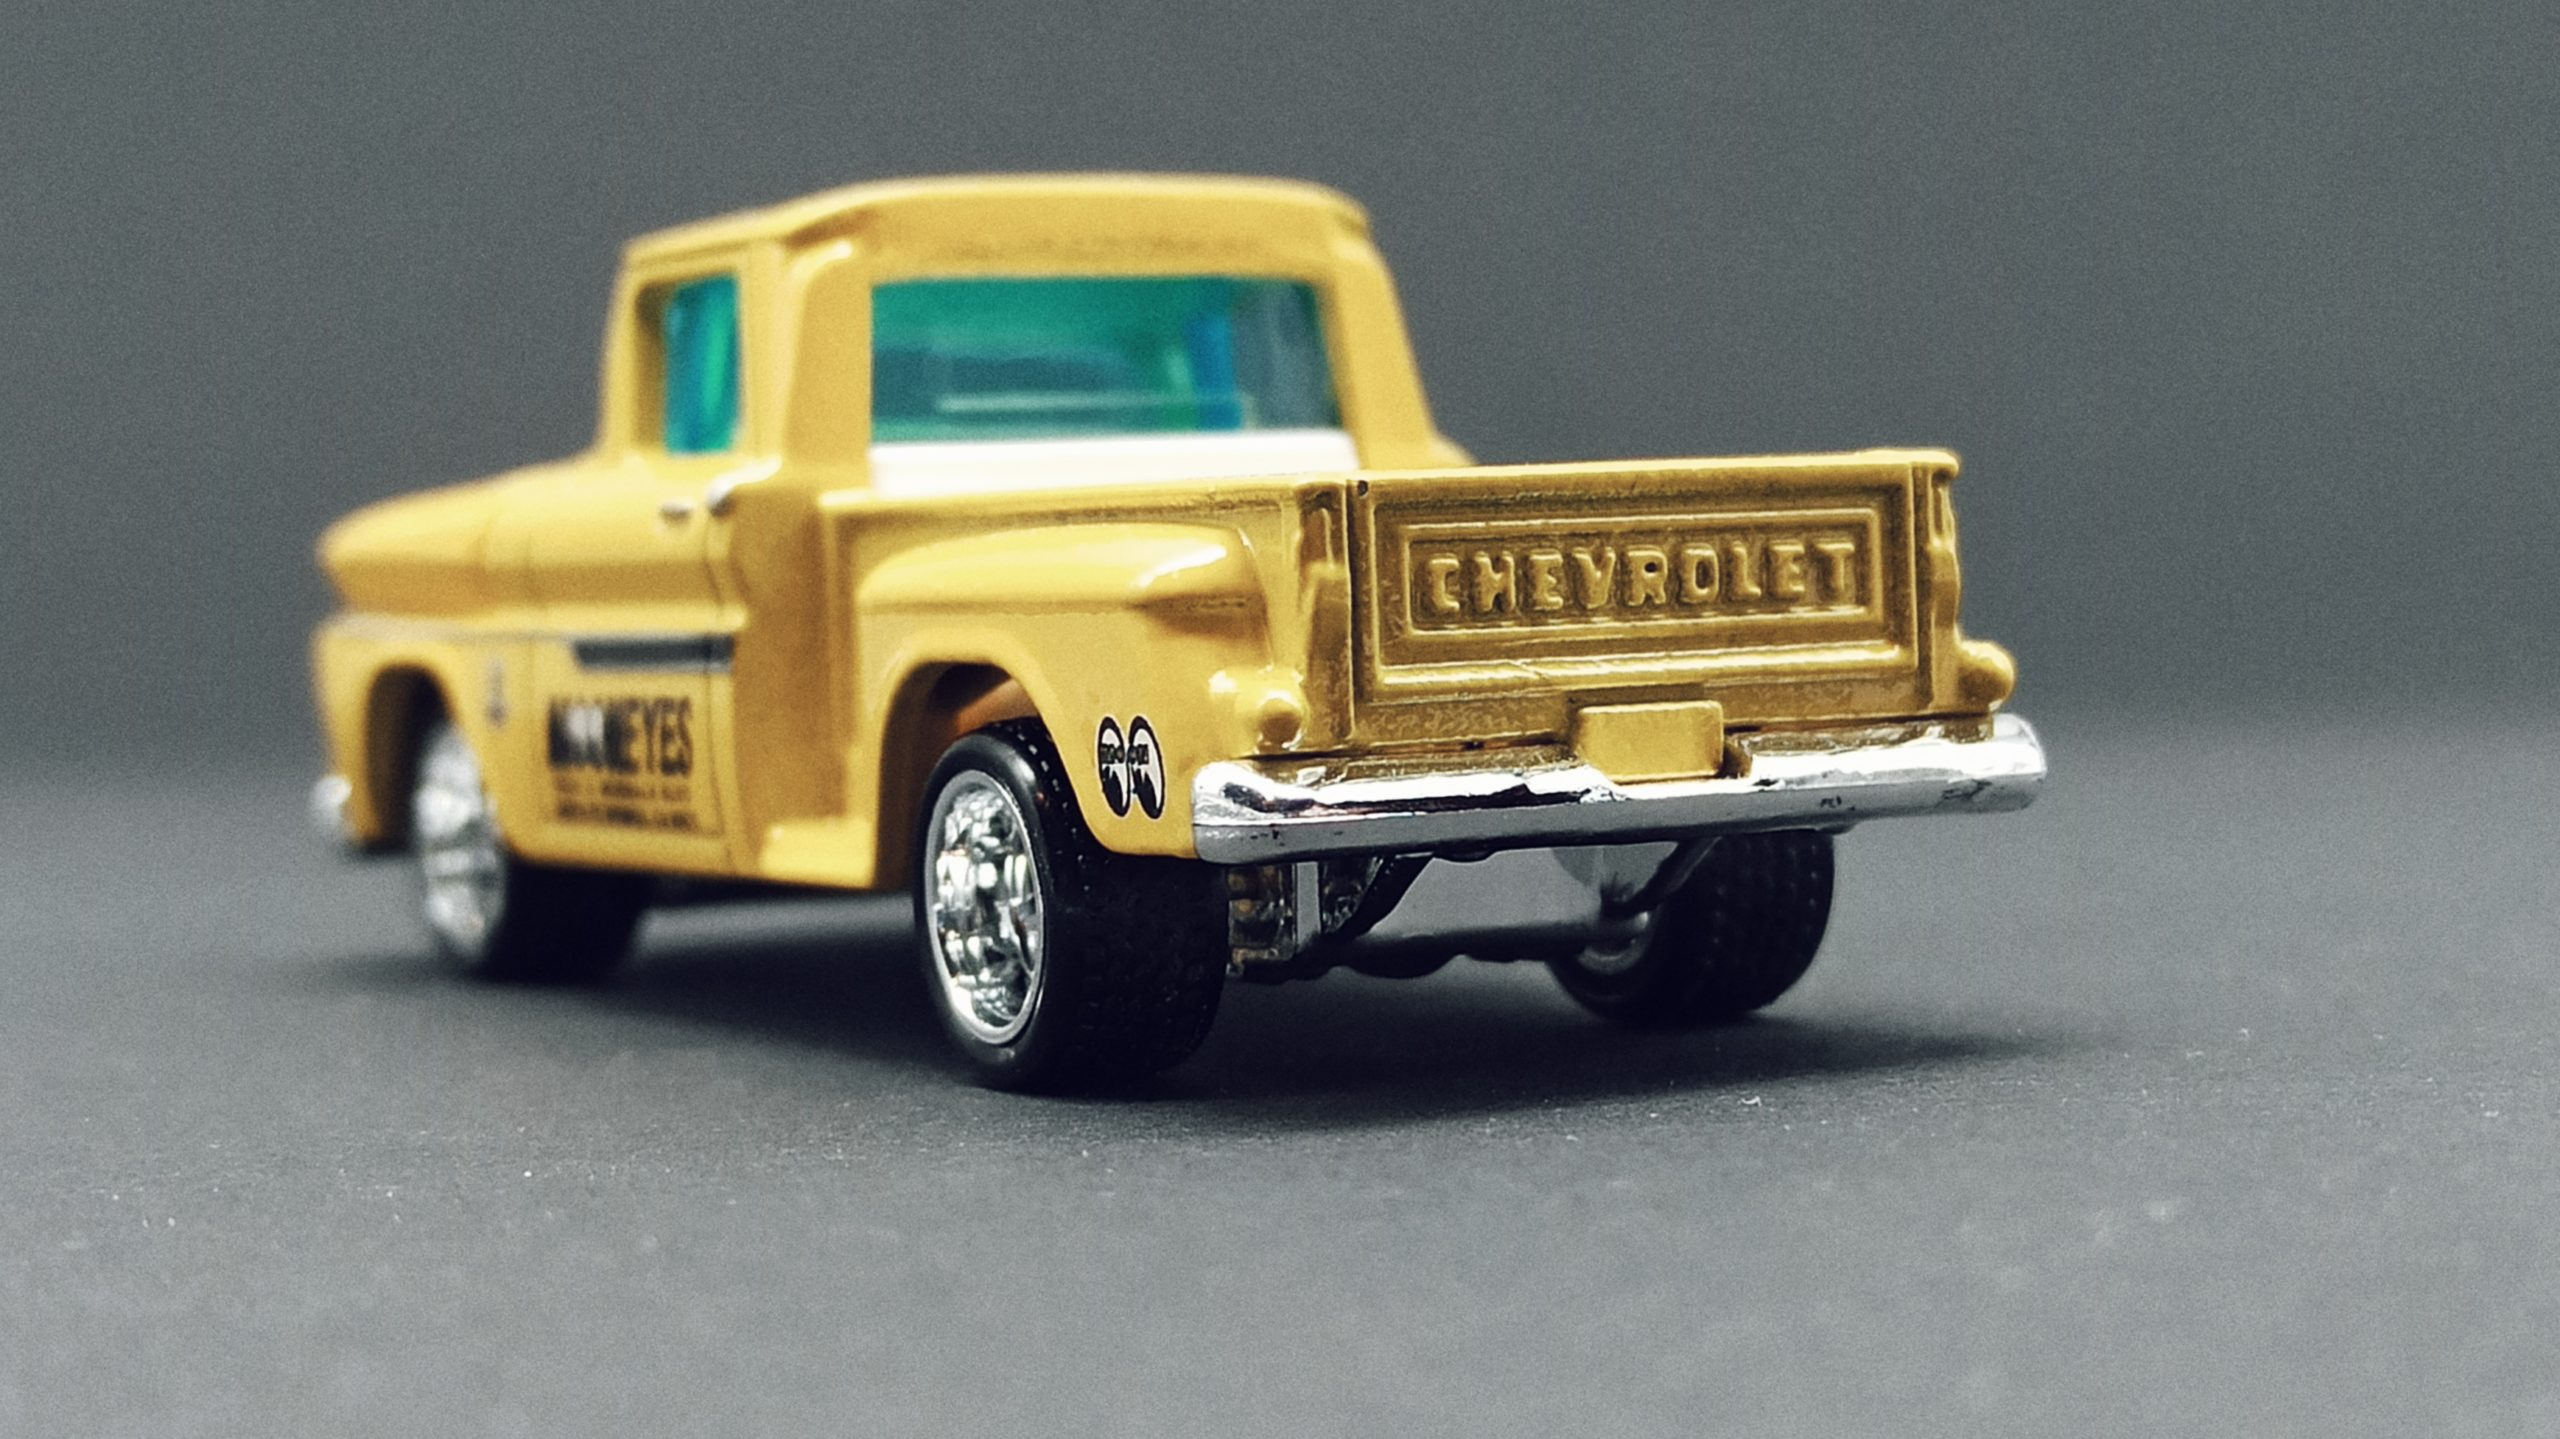 Matchbox Collectors Series '63 Chevy C10 Pickup Truck 1963 (GRK24) 2021 (3/20) yellow (Mooneyes) back angle